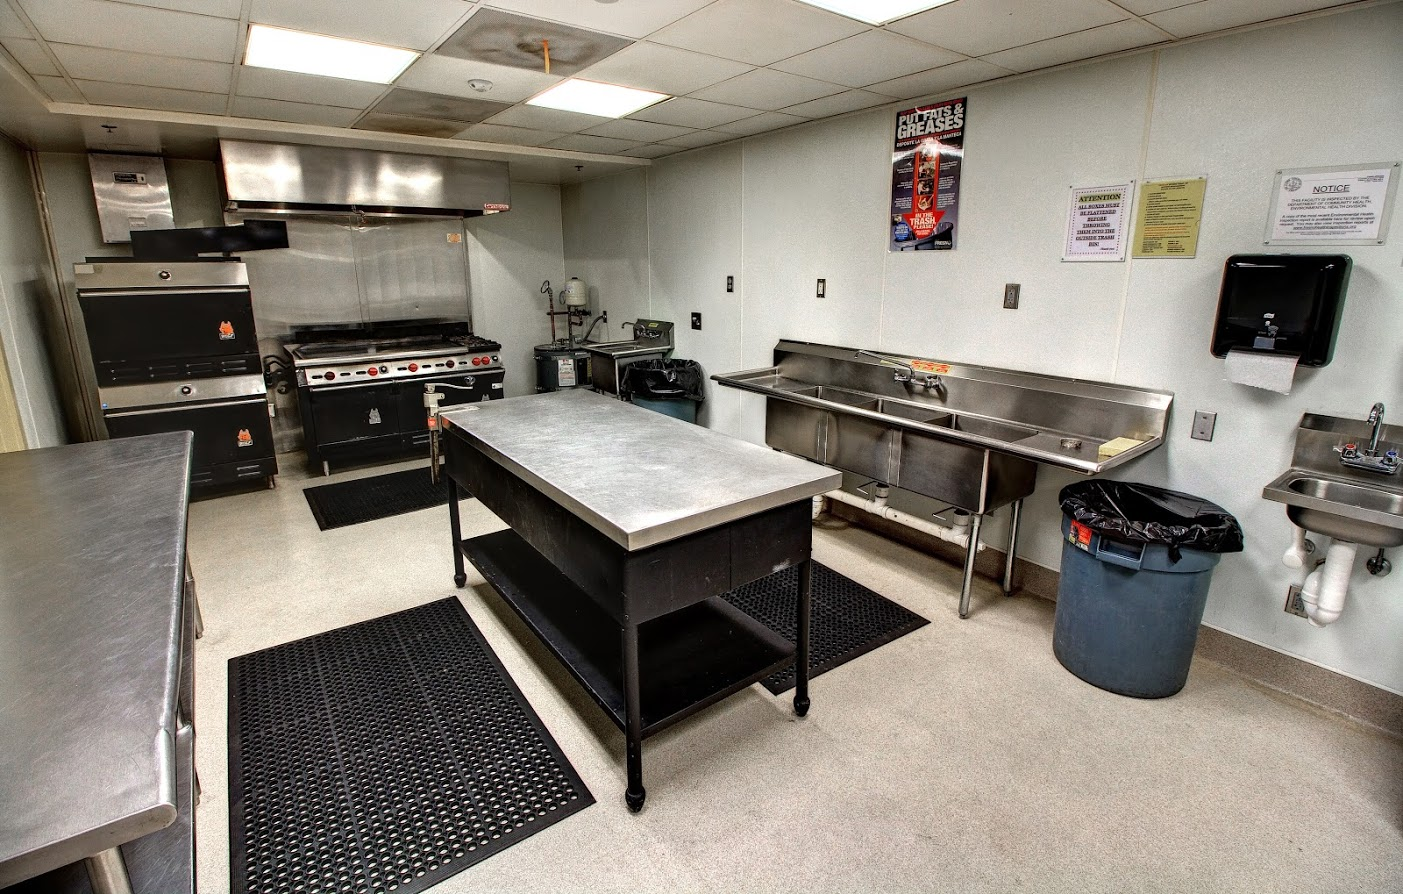 Veterans Room Kitchen